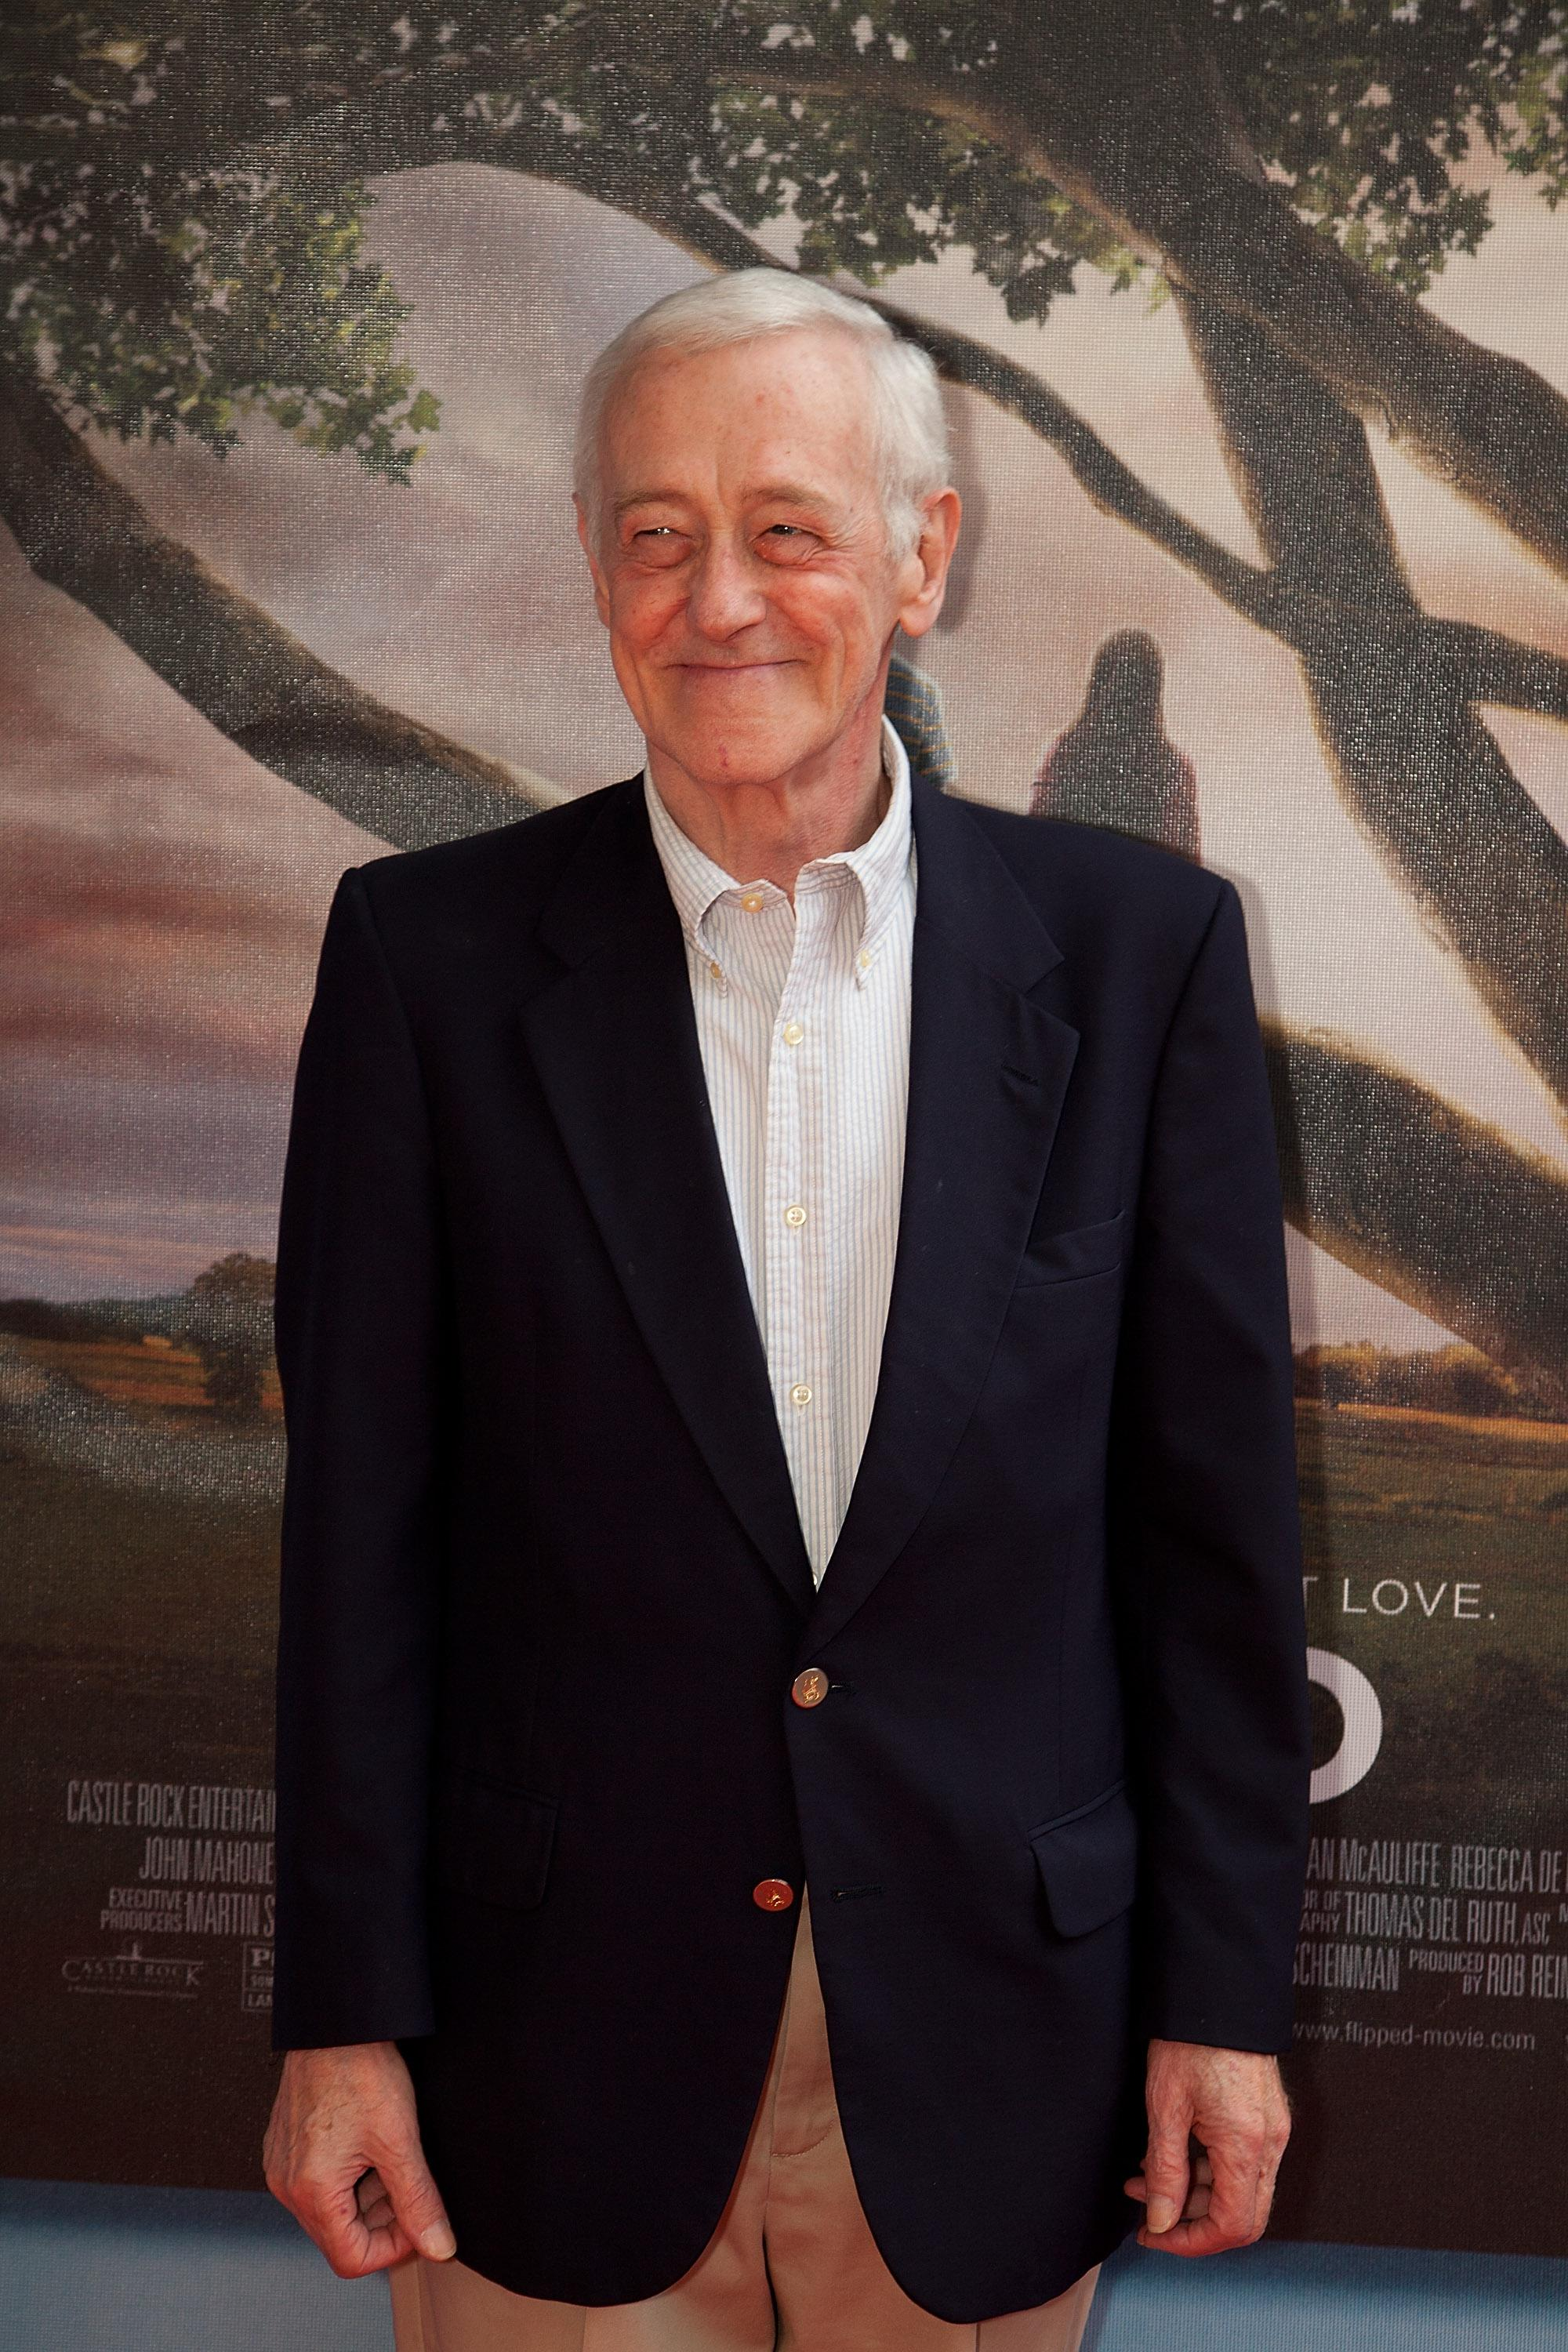 John Mahoney attends the premiere of Flipped at the Hilbert Circle Theatre in Indianapolis, Indiana, 2010.